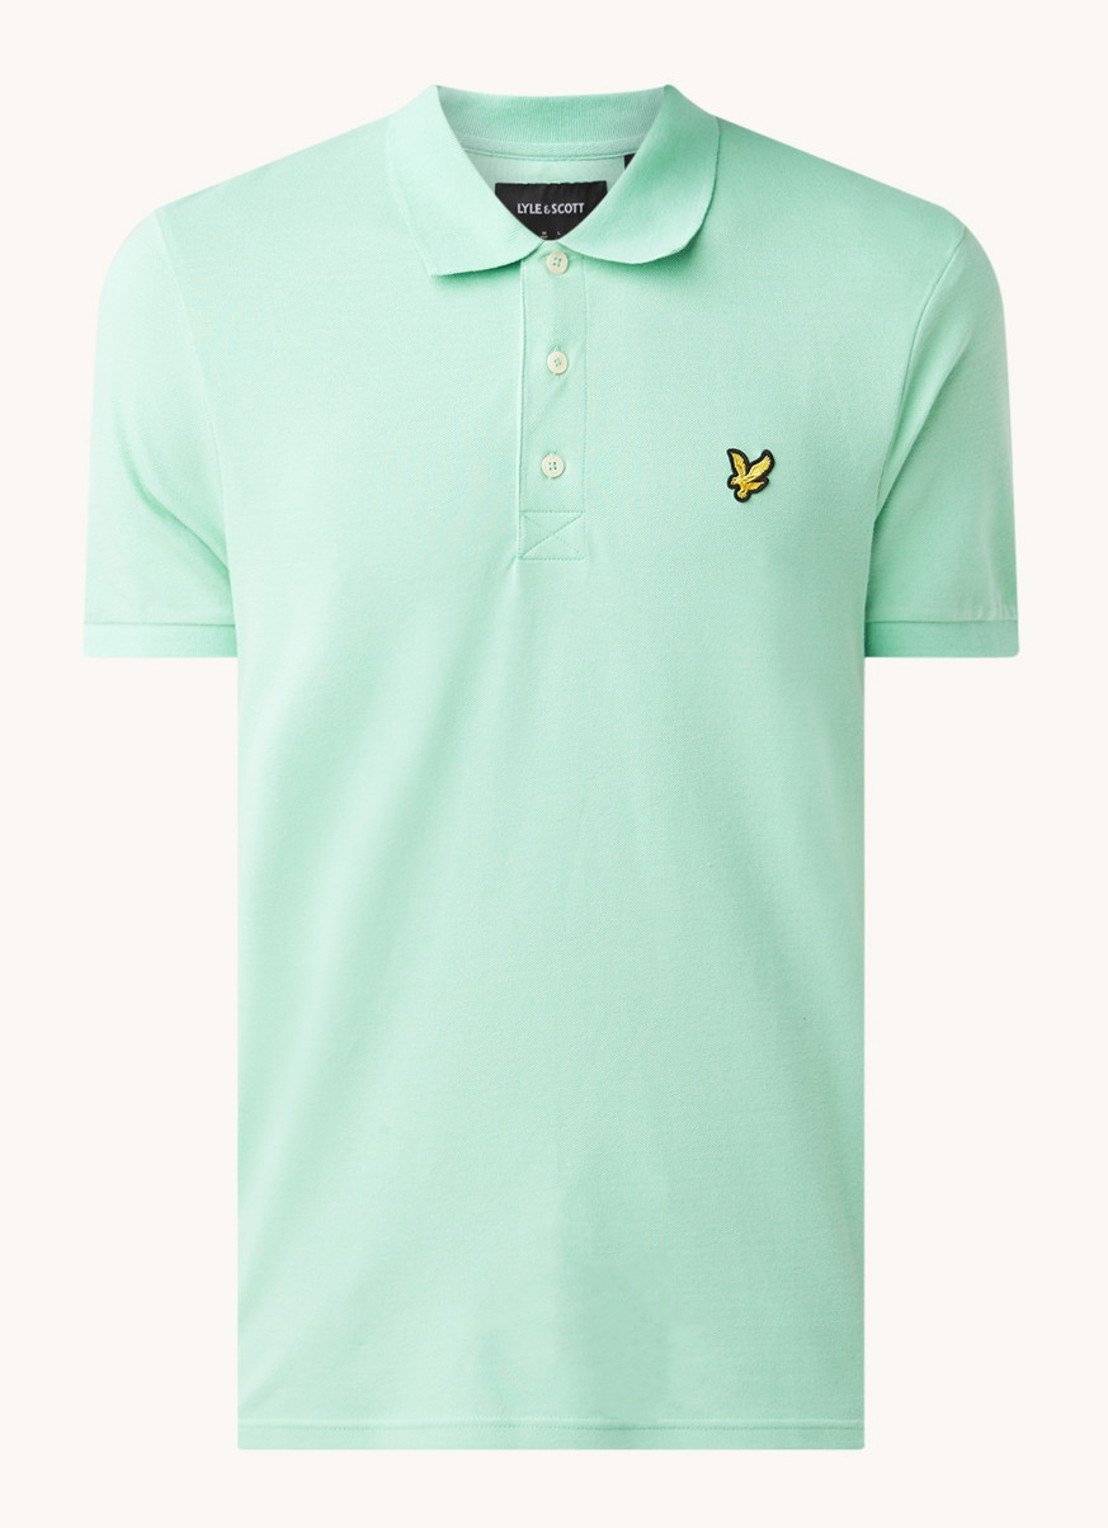 Lyle&Scott Polo groen slim fit